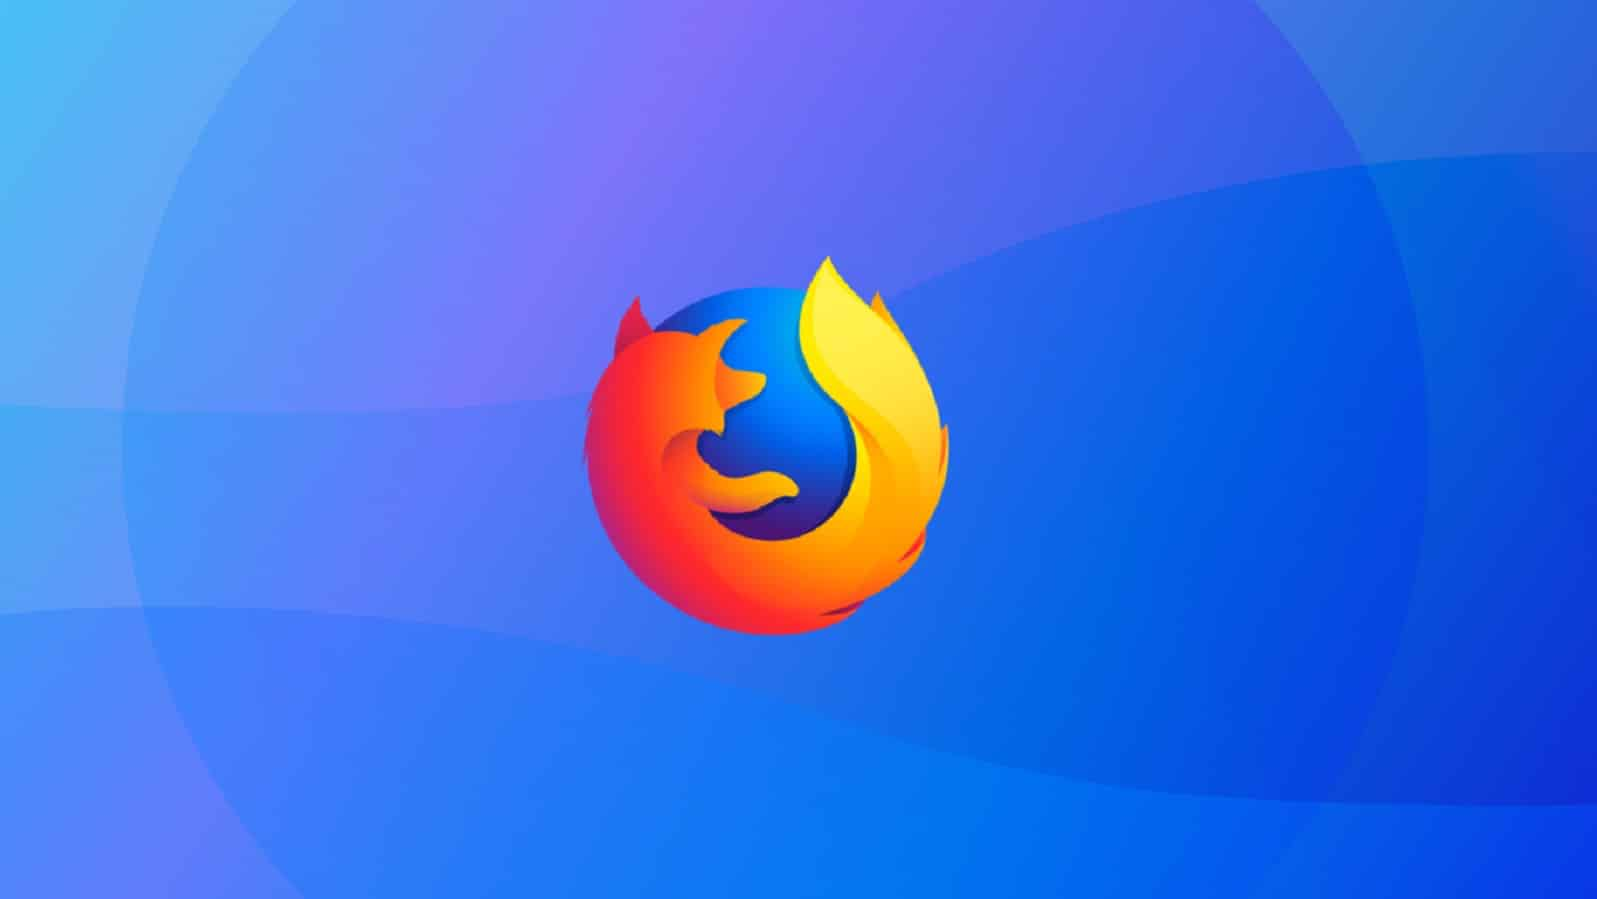 mozilla firefox logo on blue background vs google chrome